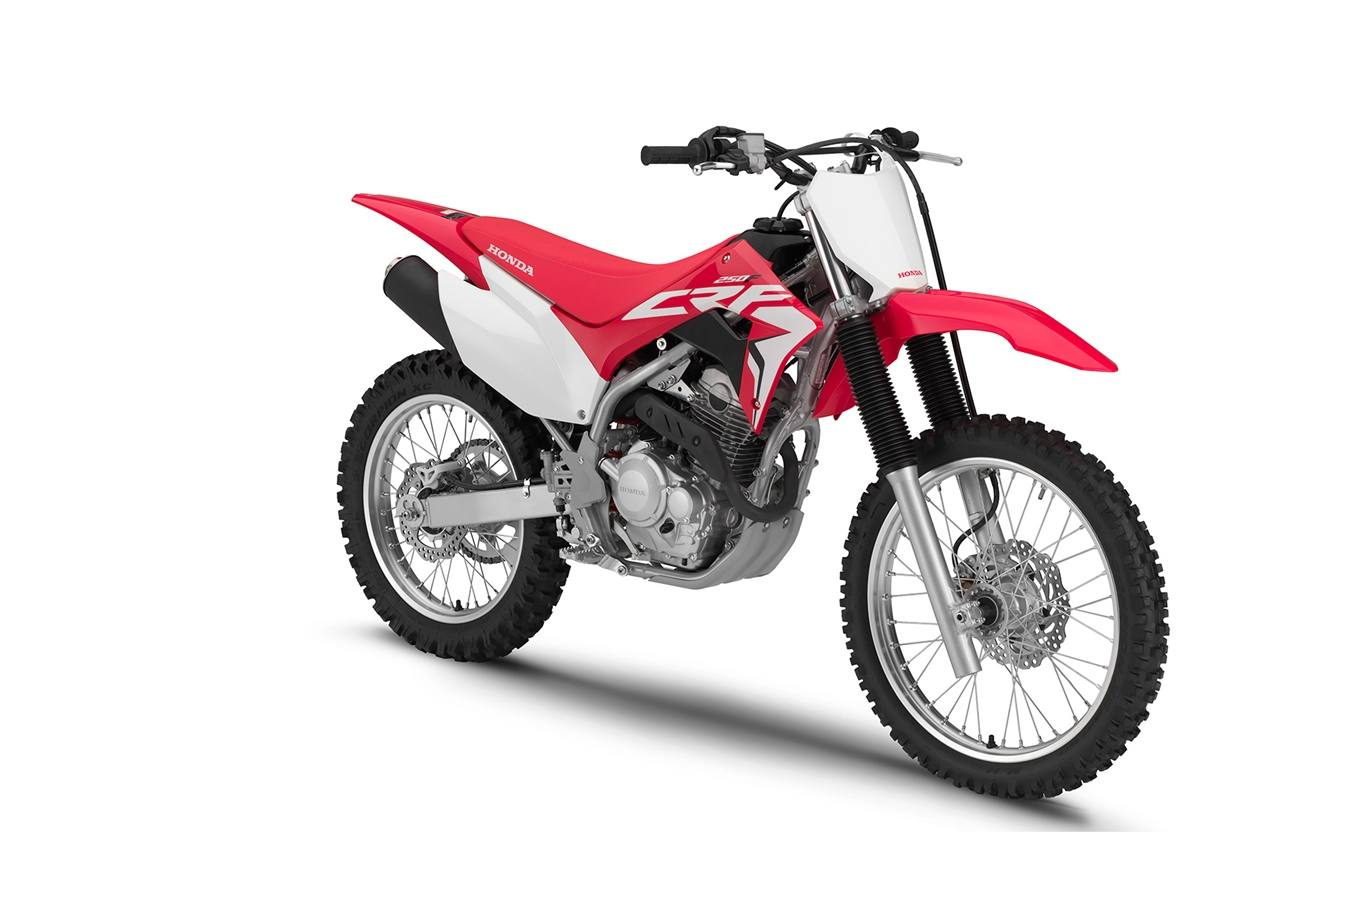 2019 Honda Crf250f For Sale In Kelowna Bc Powerhouse Motorcycle Engine Specifications Extreme Red